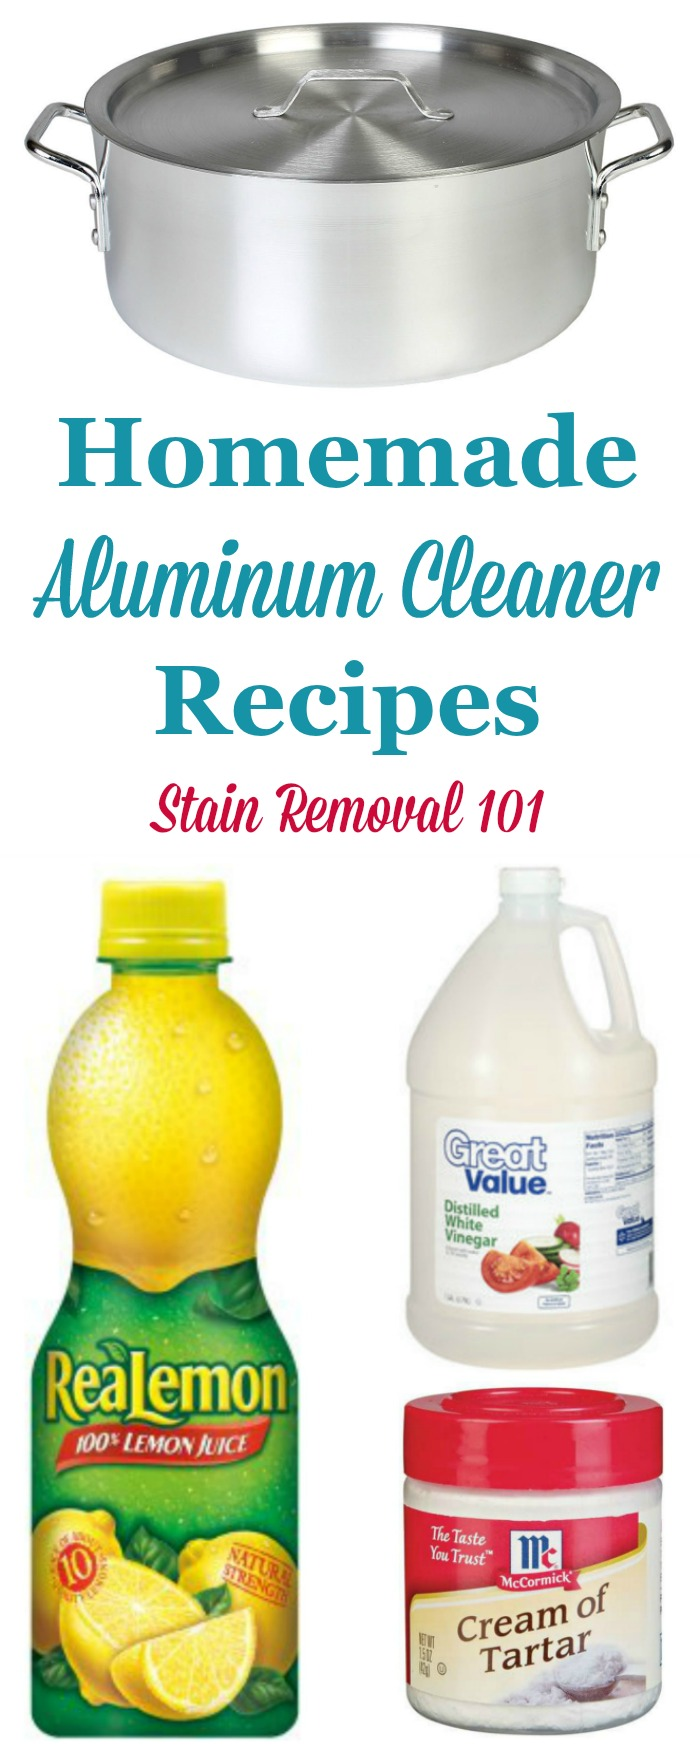 Homemade Aluminum Cleaner Recipes